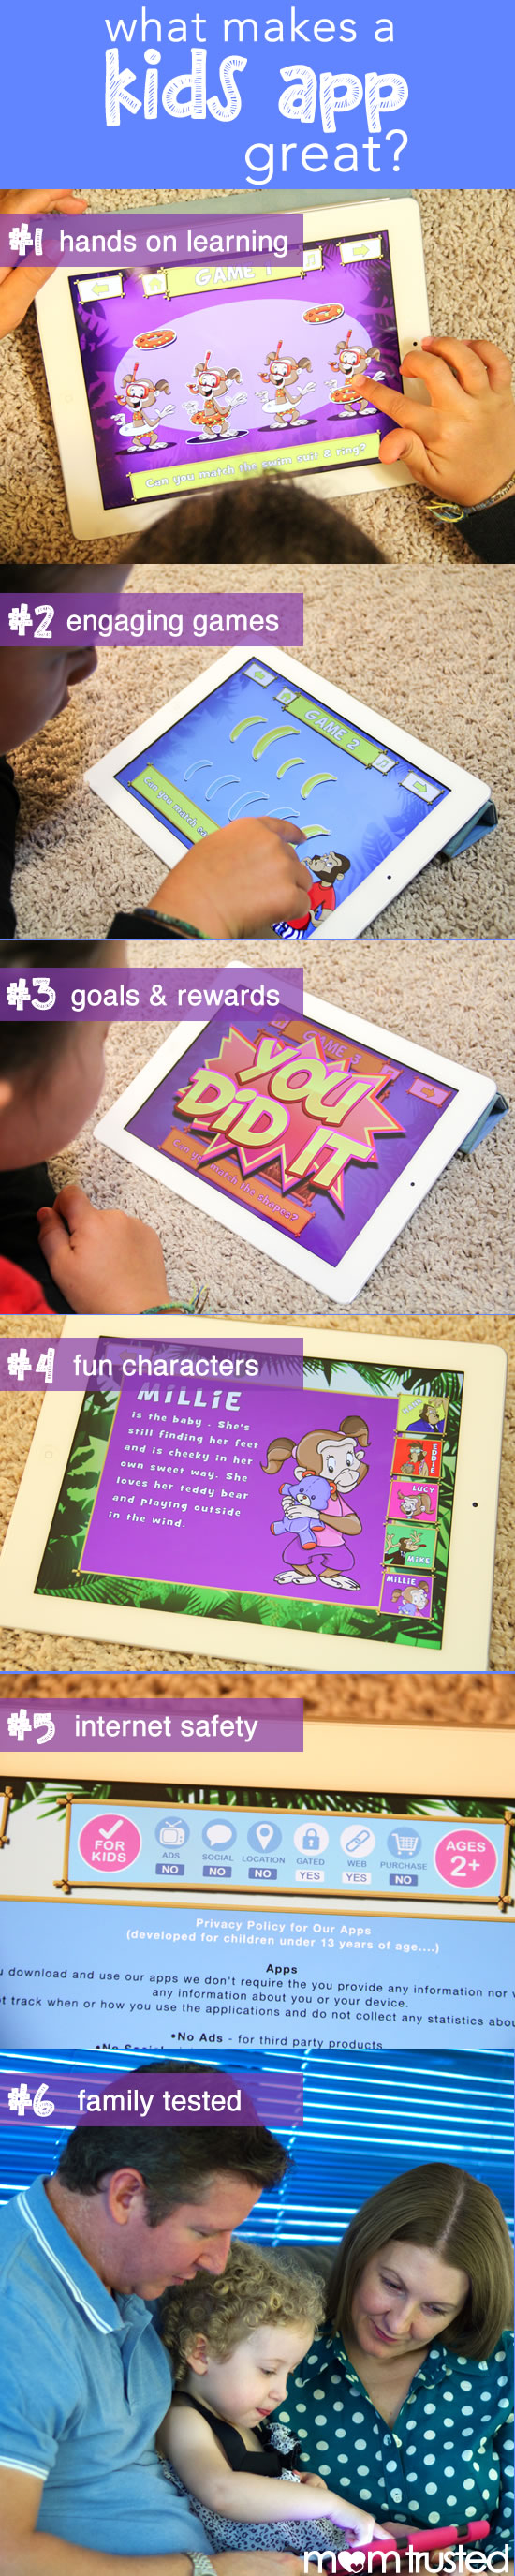 What Makes a Great Kids App? what makes a good kids app